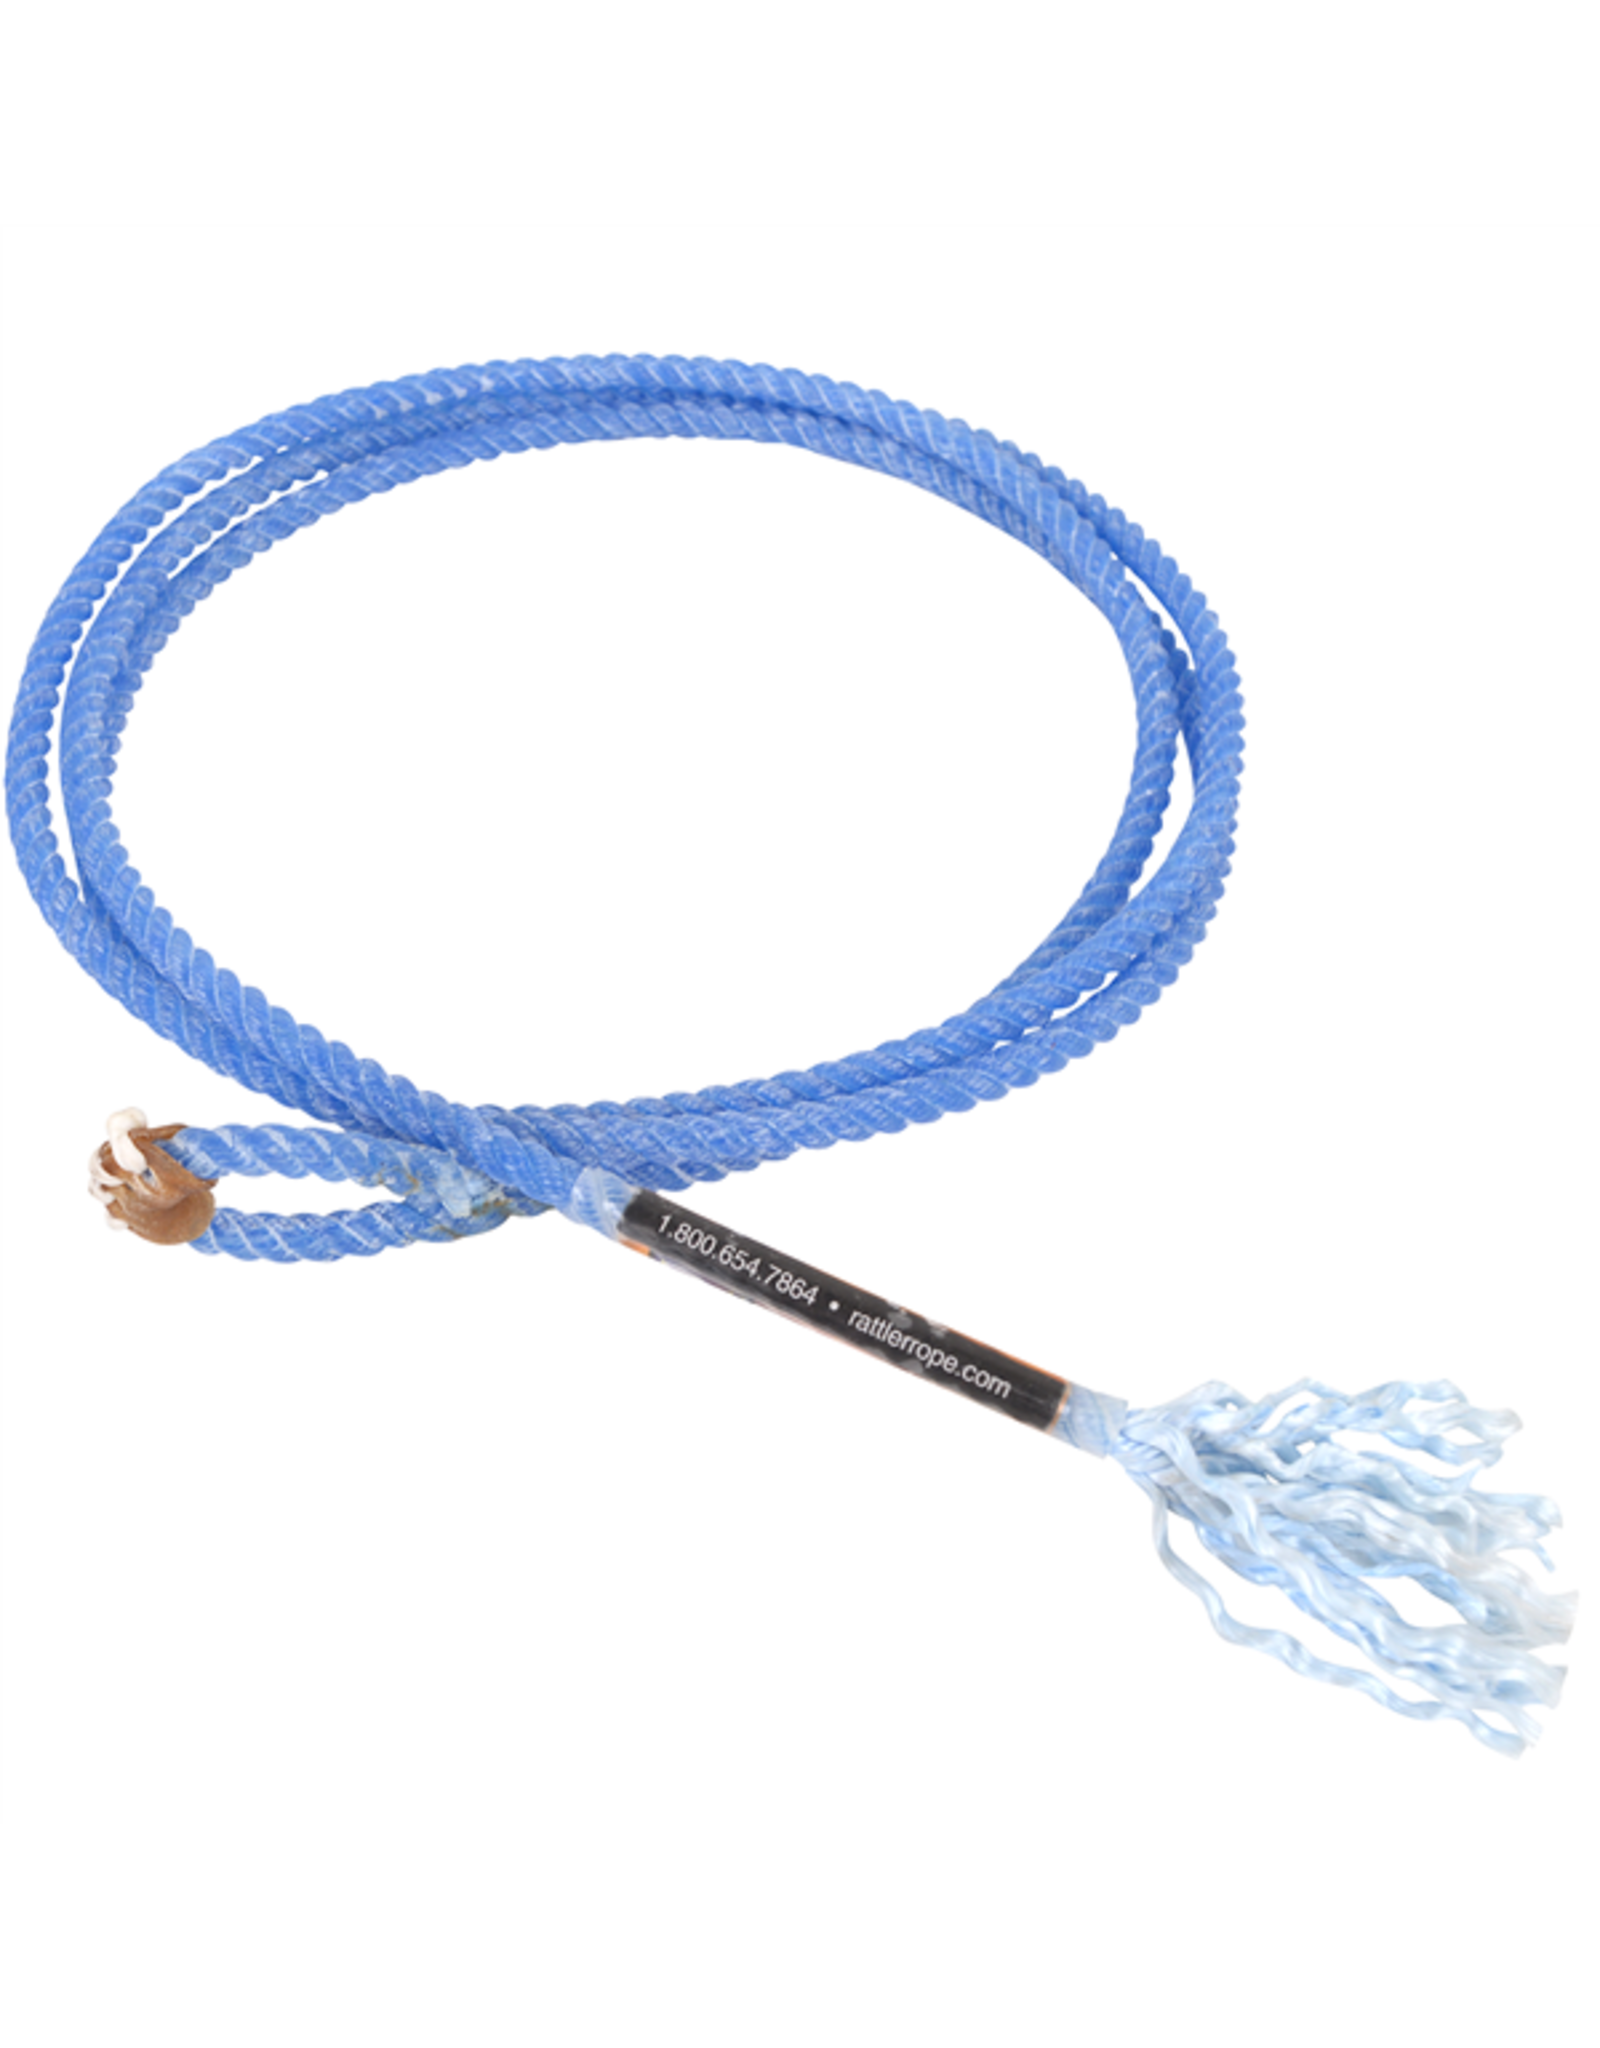 Boy's Goat String- 60' Soft-RBGS3 - Three construction for optimal hold in variations of stiffness for speed and control, the softest string for the ultimate beginner. ***Back Ordered***